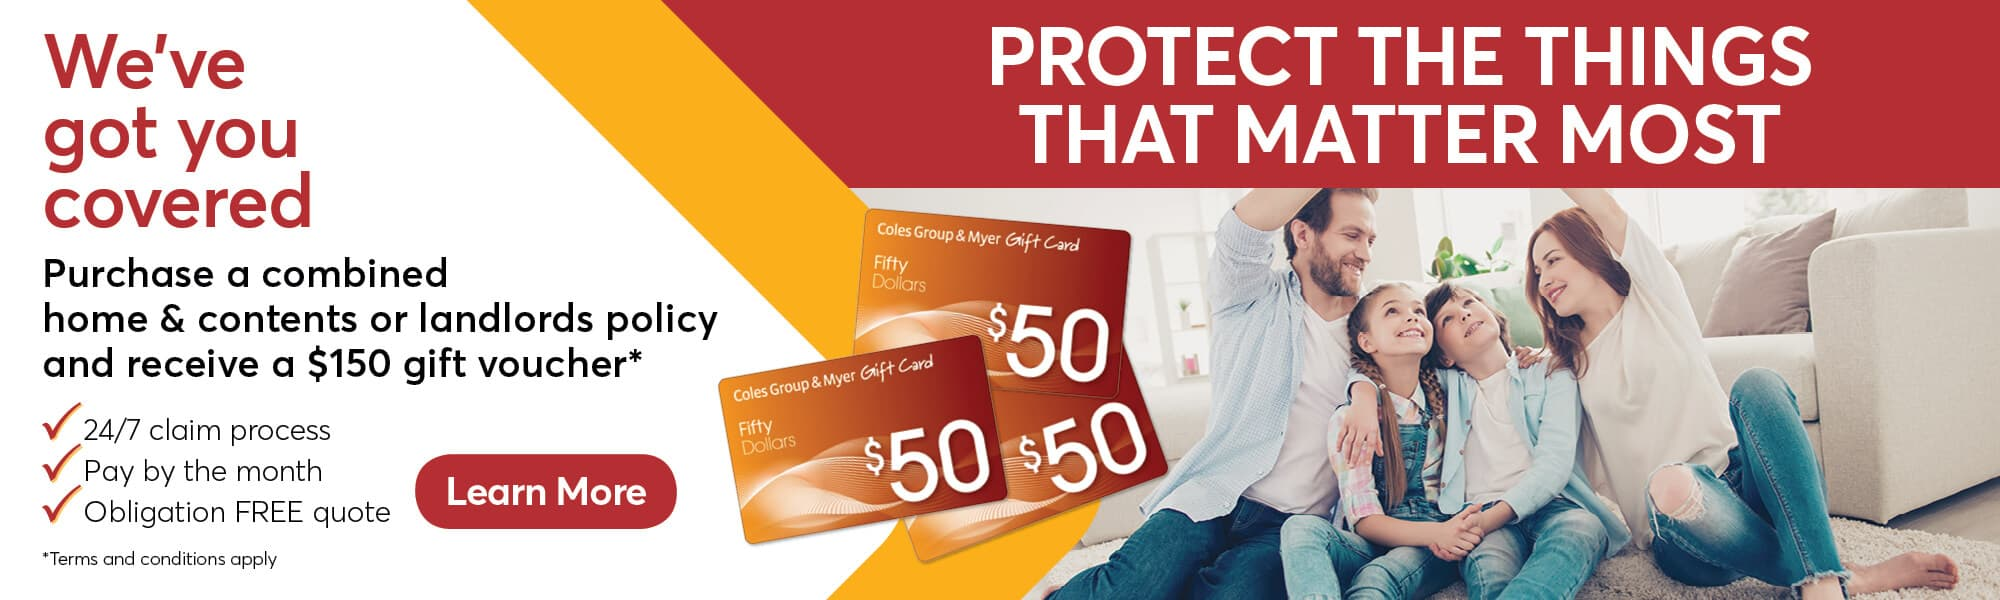 Home Insurance Promotion